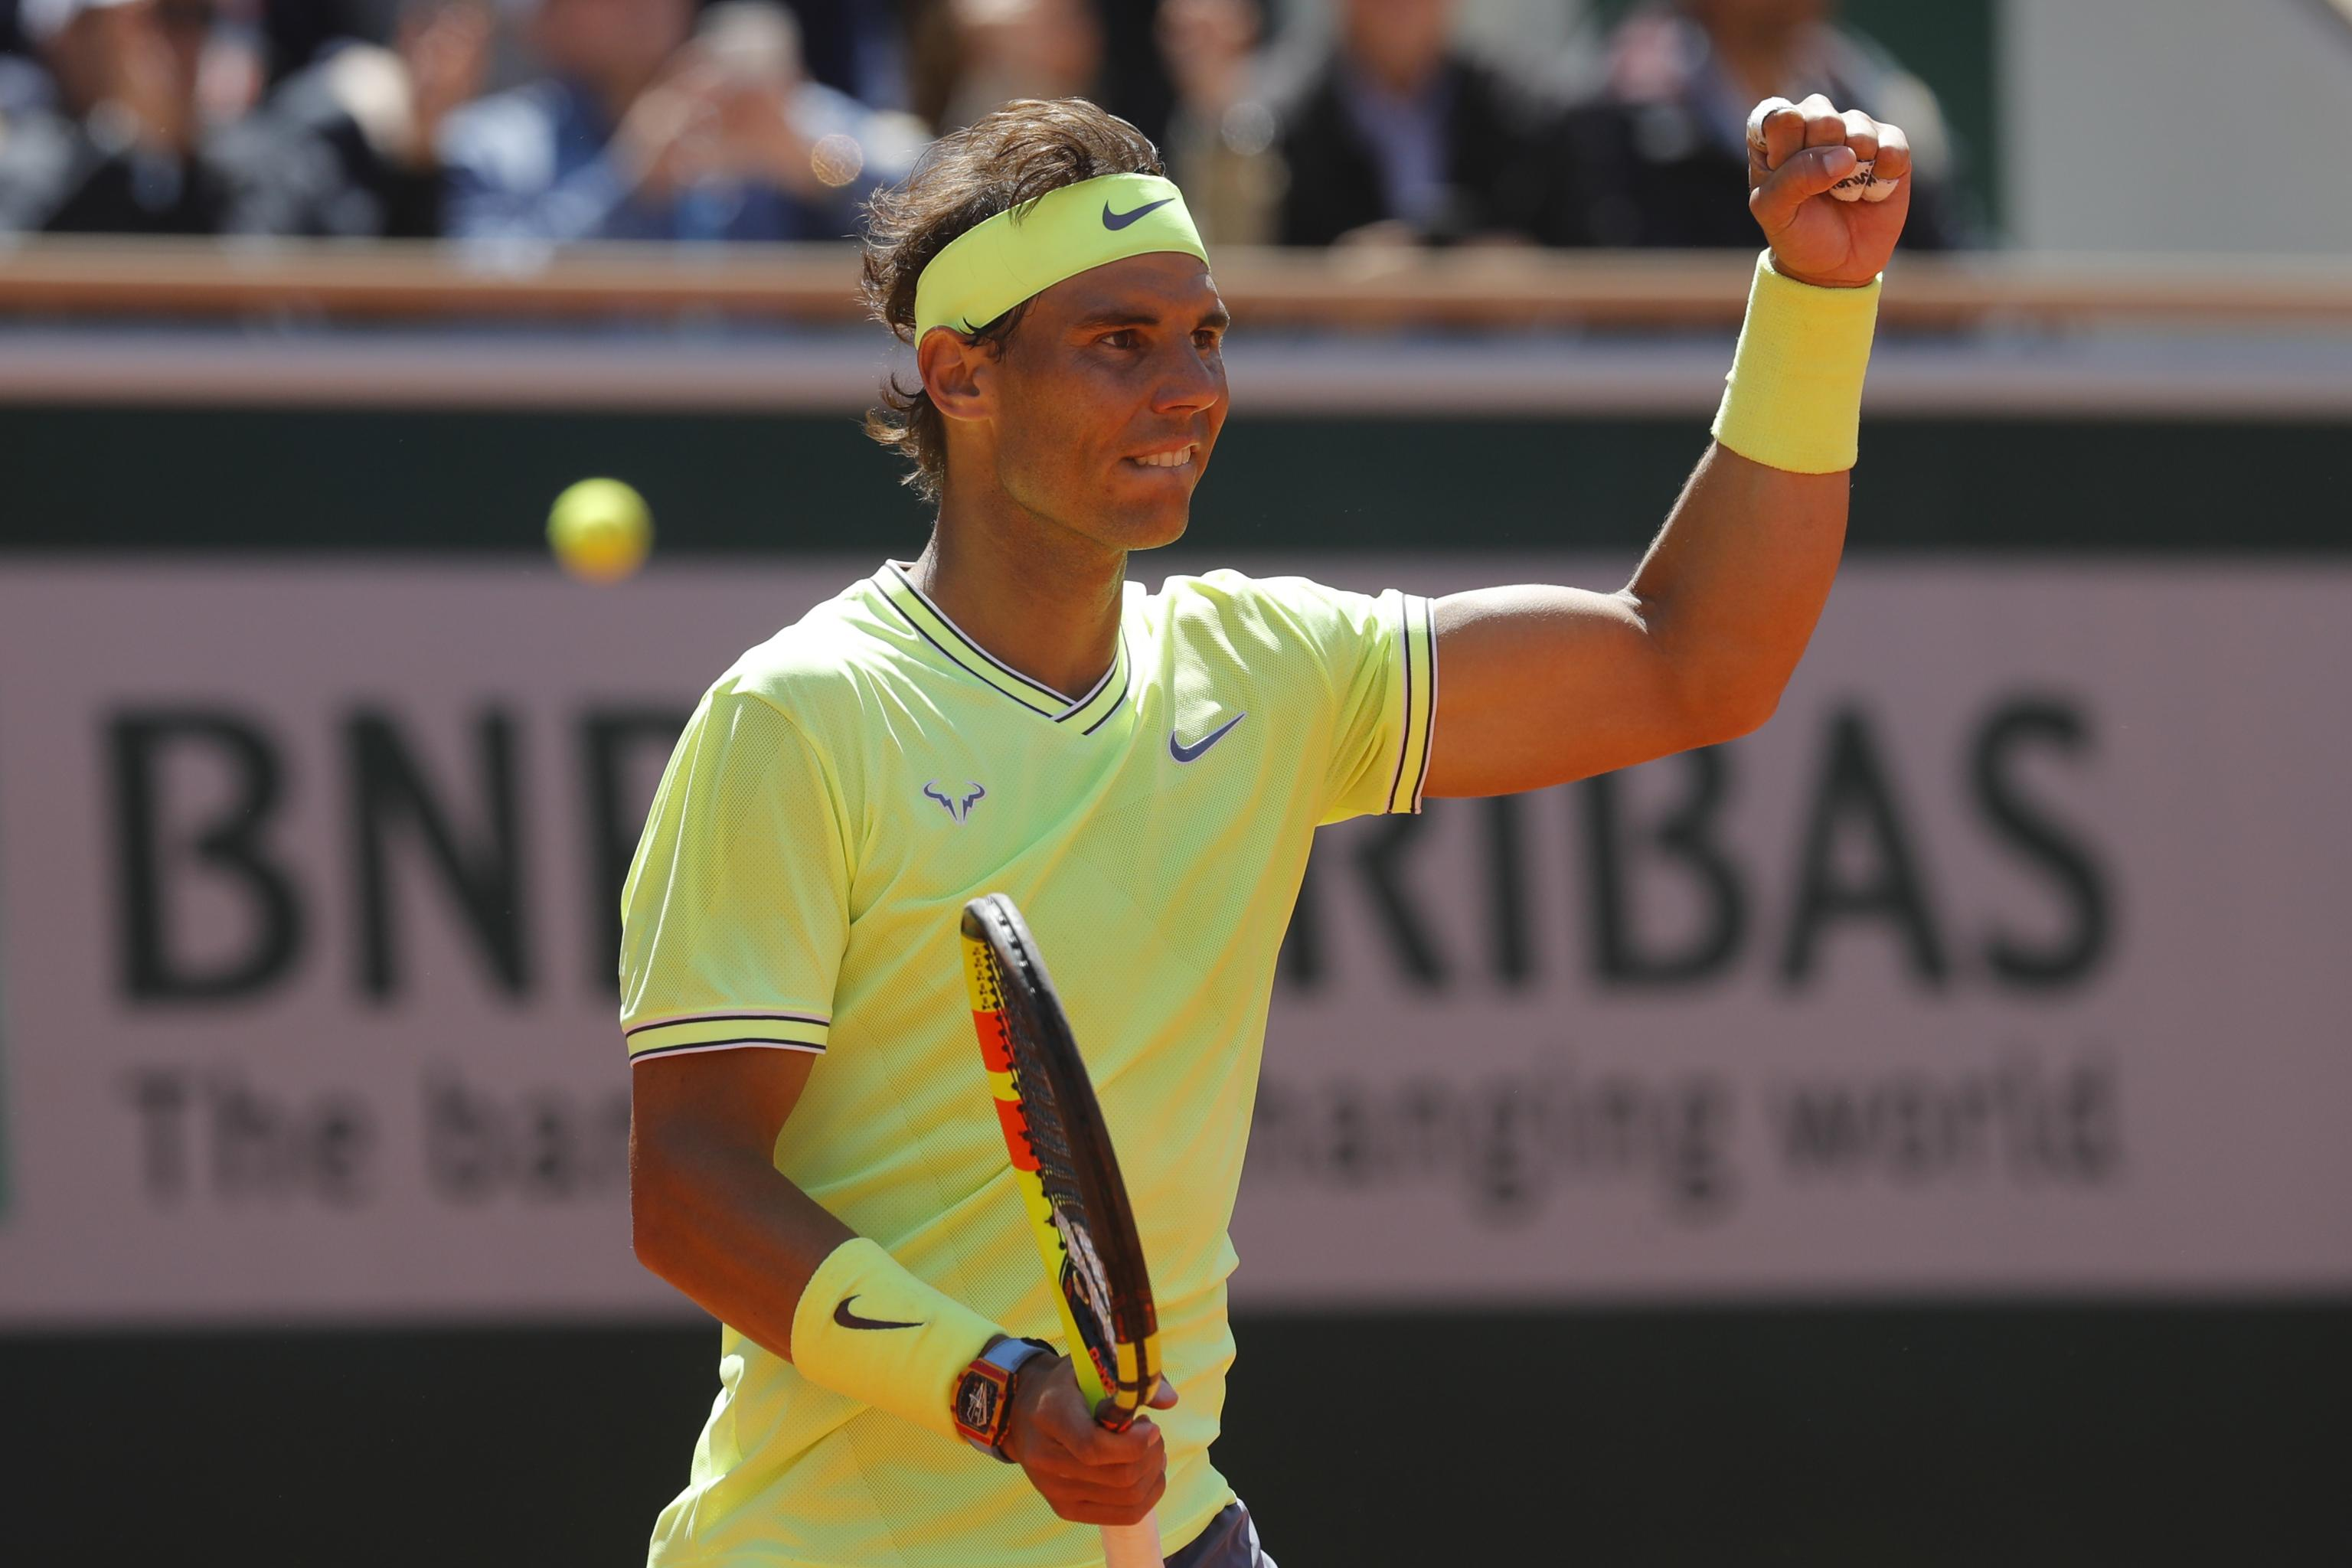 French Open 2019 Men S Final Rafael Nadal Vs Dominic Thiem Predictions Bleacher Report Latest News Videos And Highlights